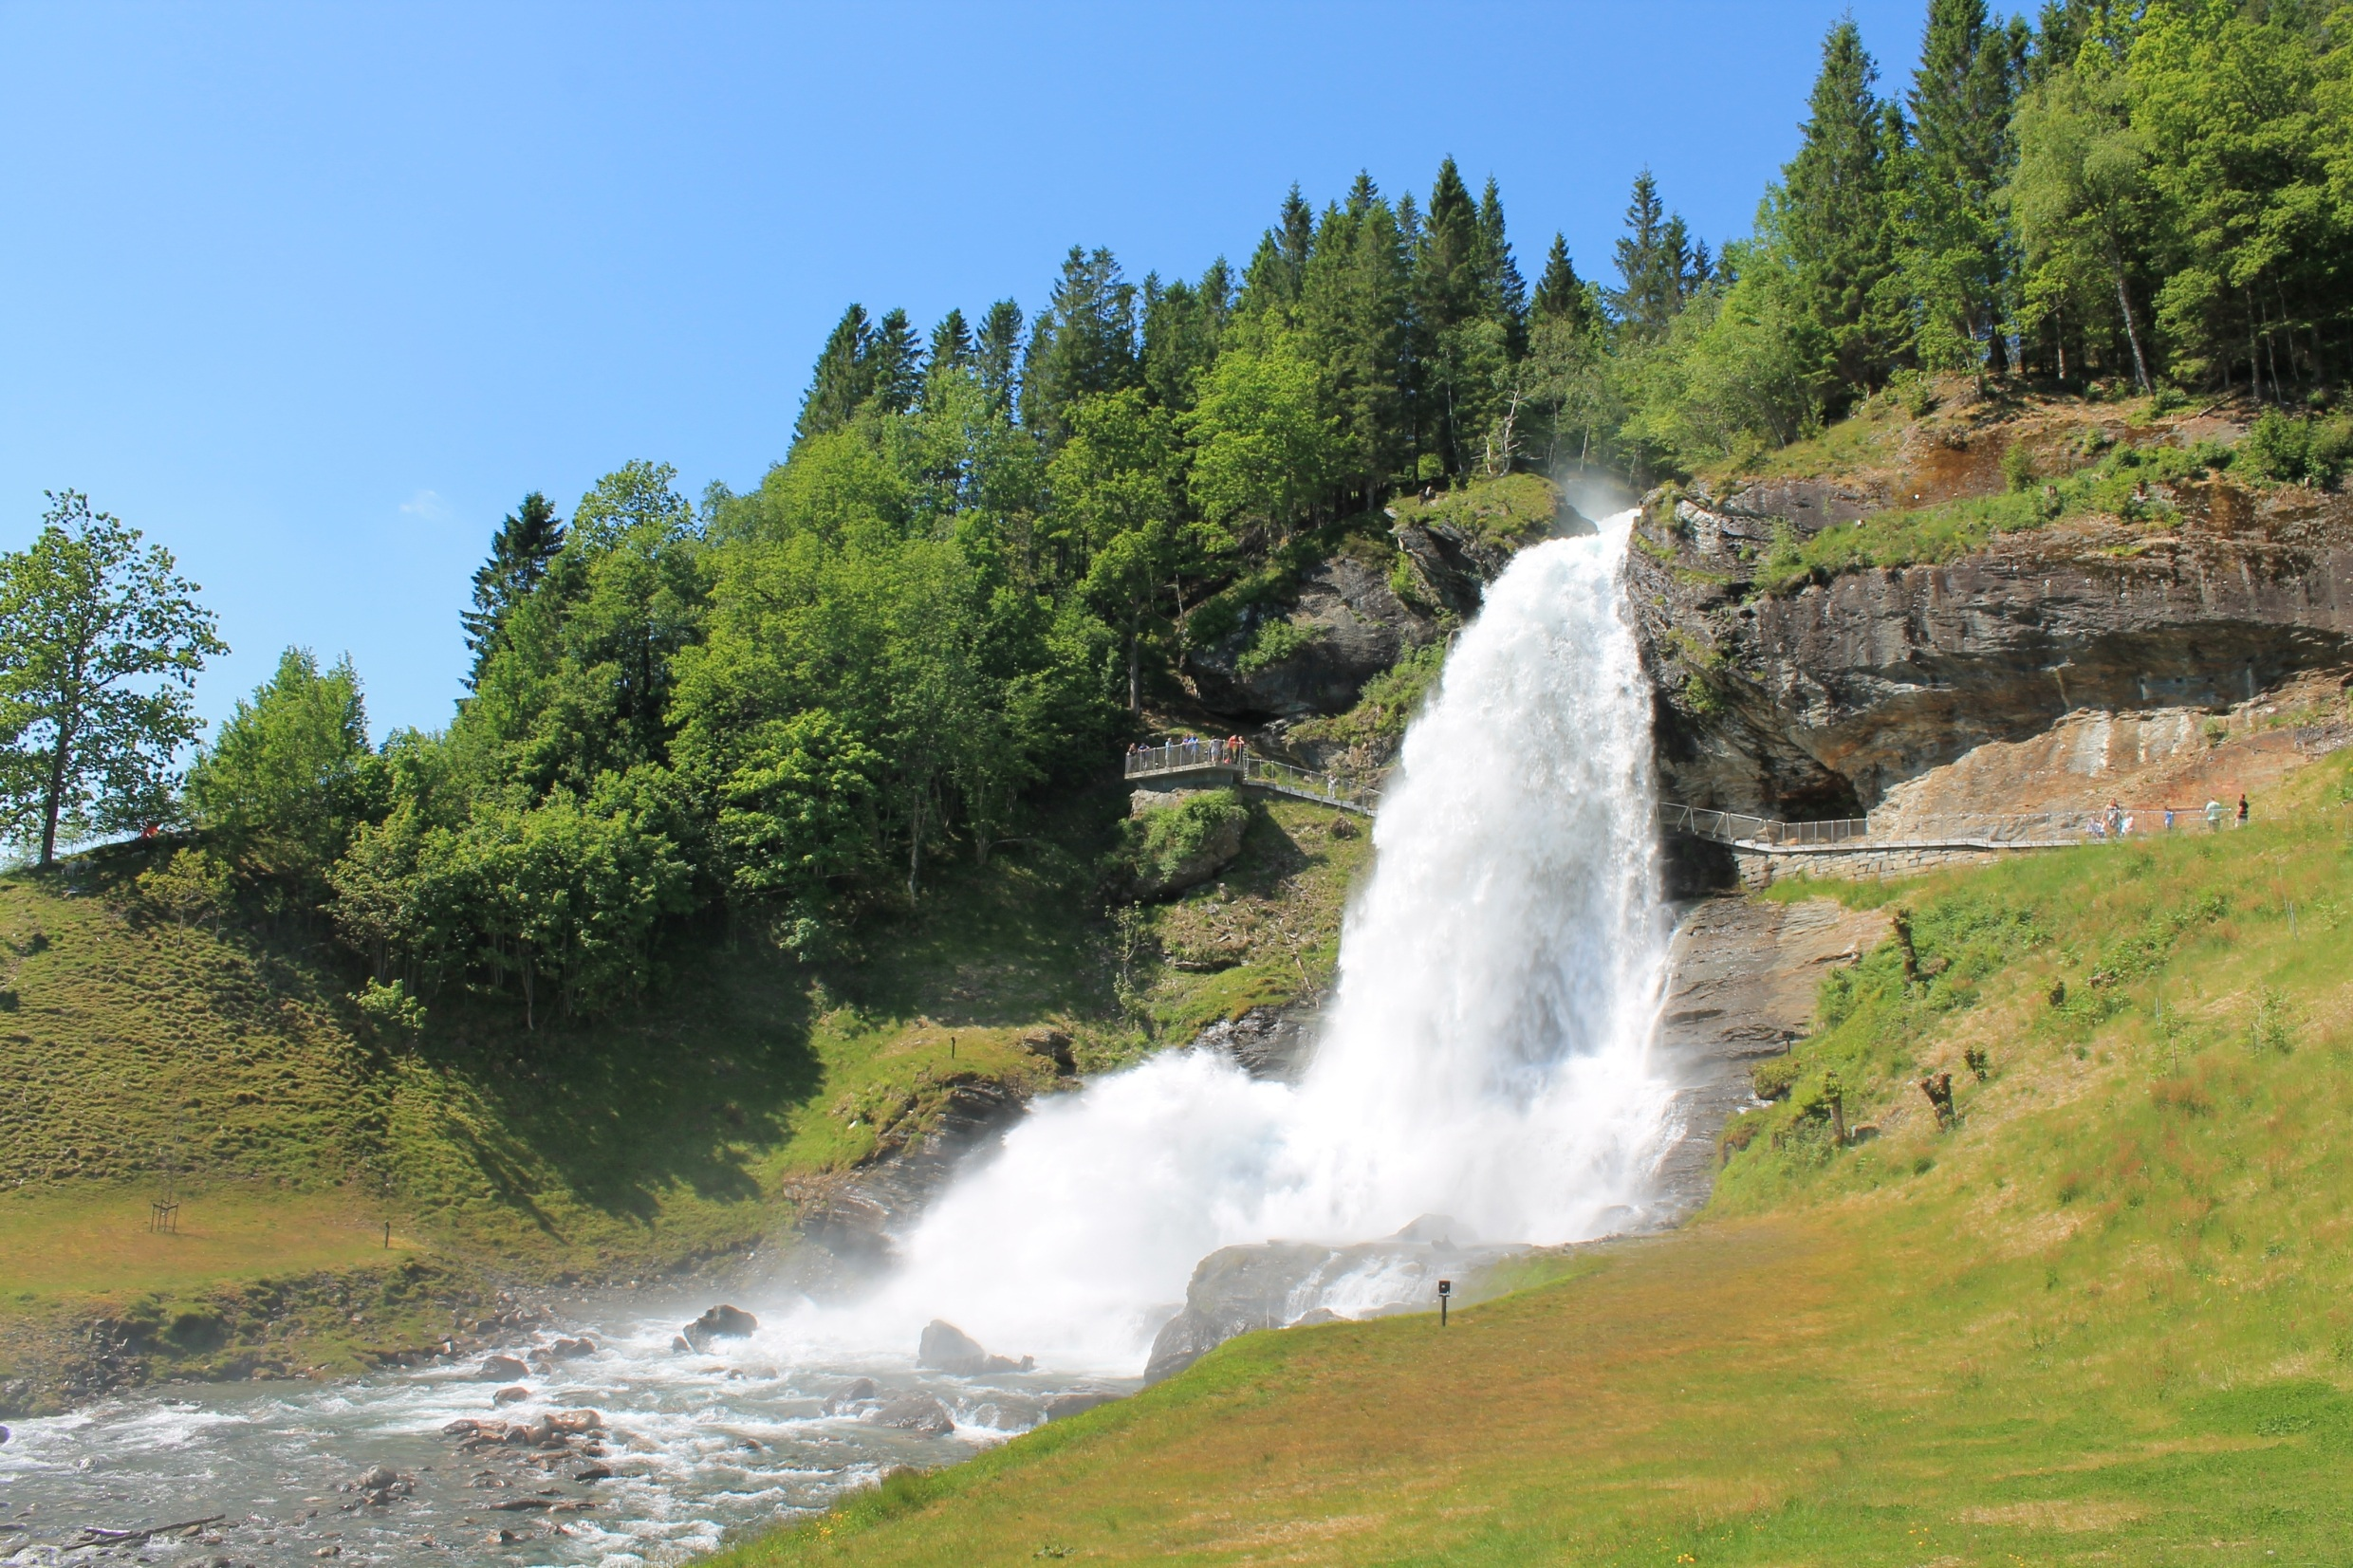 Norway: Fjords & Glaciers | Steinsdalsfossen Waterfall, Steine, Norway